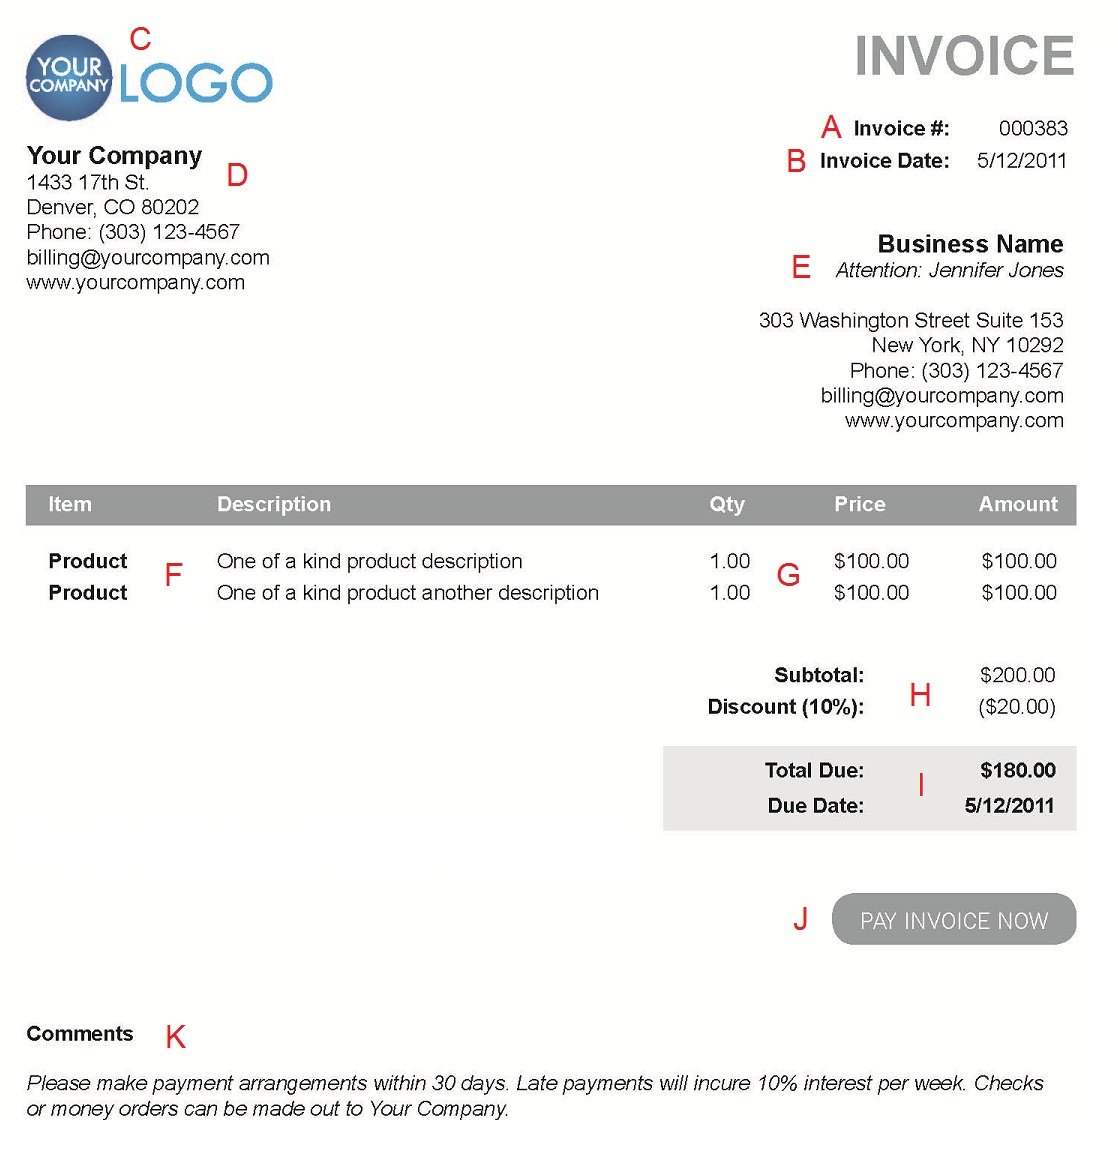 Coolmathgamesus  Fascinating The  Different Sections Of An Electronic Payment Invoice With Heavenly A  With Appealing Can You Return Something Without A Receipt Also Receipt Printer For Square In Addition Enterprise Car Rental Receipt And Acknowledgement Of Receipt As Well As Wireless Receipt Printer Additionally Define Receipts From Paysimplecom With Coolmathgamesus  Heavenly The  Different Sections Of An Electronic Payment Invoice With Appealing A  And Fascinating Can You Return Something Without A Receipt Also Receipt Printer For Square In Addition Enterprise Car Rental Receipt From Paysimplecom